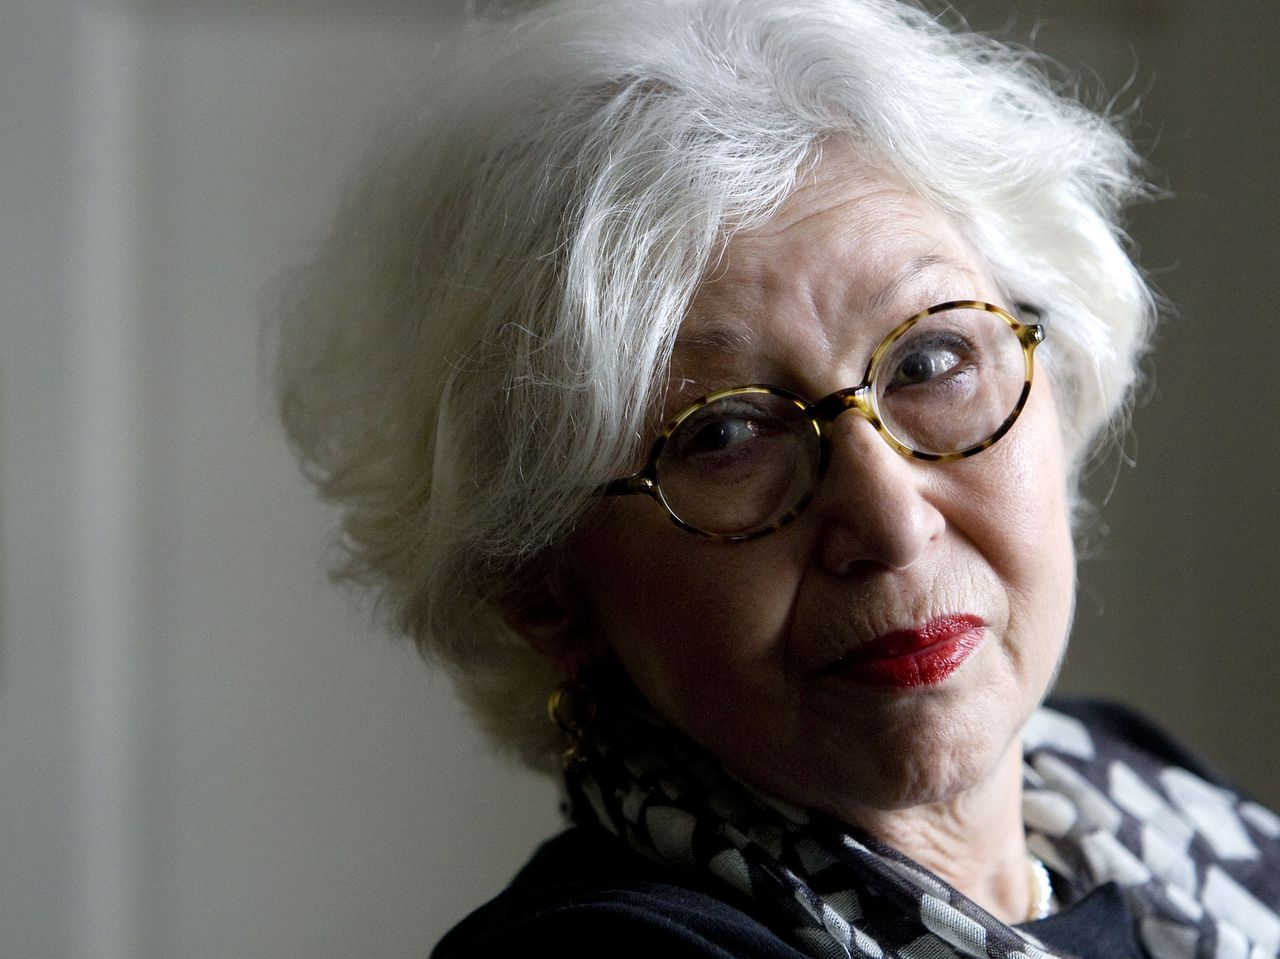 """FILE - In this March 12, 2010 file photo Berthe Meijer is seen during an interview with the Associated Press at her home in Amsterdam, Netherlands. Dutch Jewish author Berthe Meijer, whose life intersected tangentially with that of Anne Frank, has died. She was 74. Her husband, Gary Goldschneider, said Wednesday, July 11, 2012 that Meijer died of cancer on July 10. Meijer grew up on the same Amsterdam street where Frank attended a Montessori school. They were imprisoned in Bergen-Belsen at the same time, though Meijer was years younger. In 2010, Meijer published a memoir titled """"Life After Anne Frank,"""" describing her post-war fortunes as perhaps resembling what might have happened to Frank, had she lived. (AP Photo/Evert Elzinga, File)"""